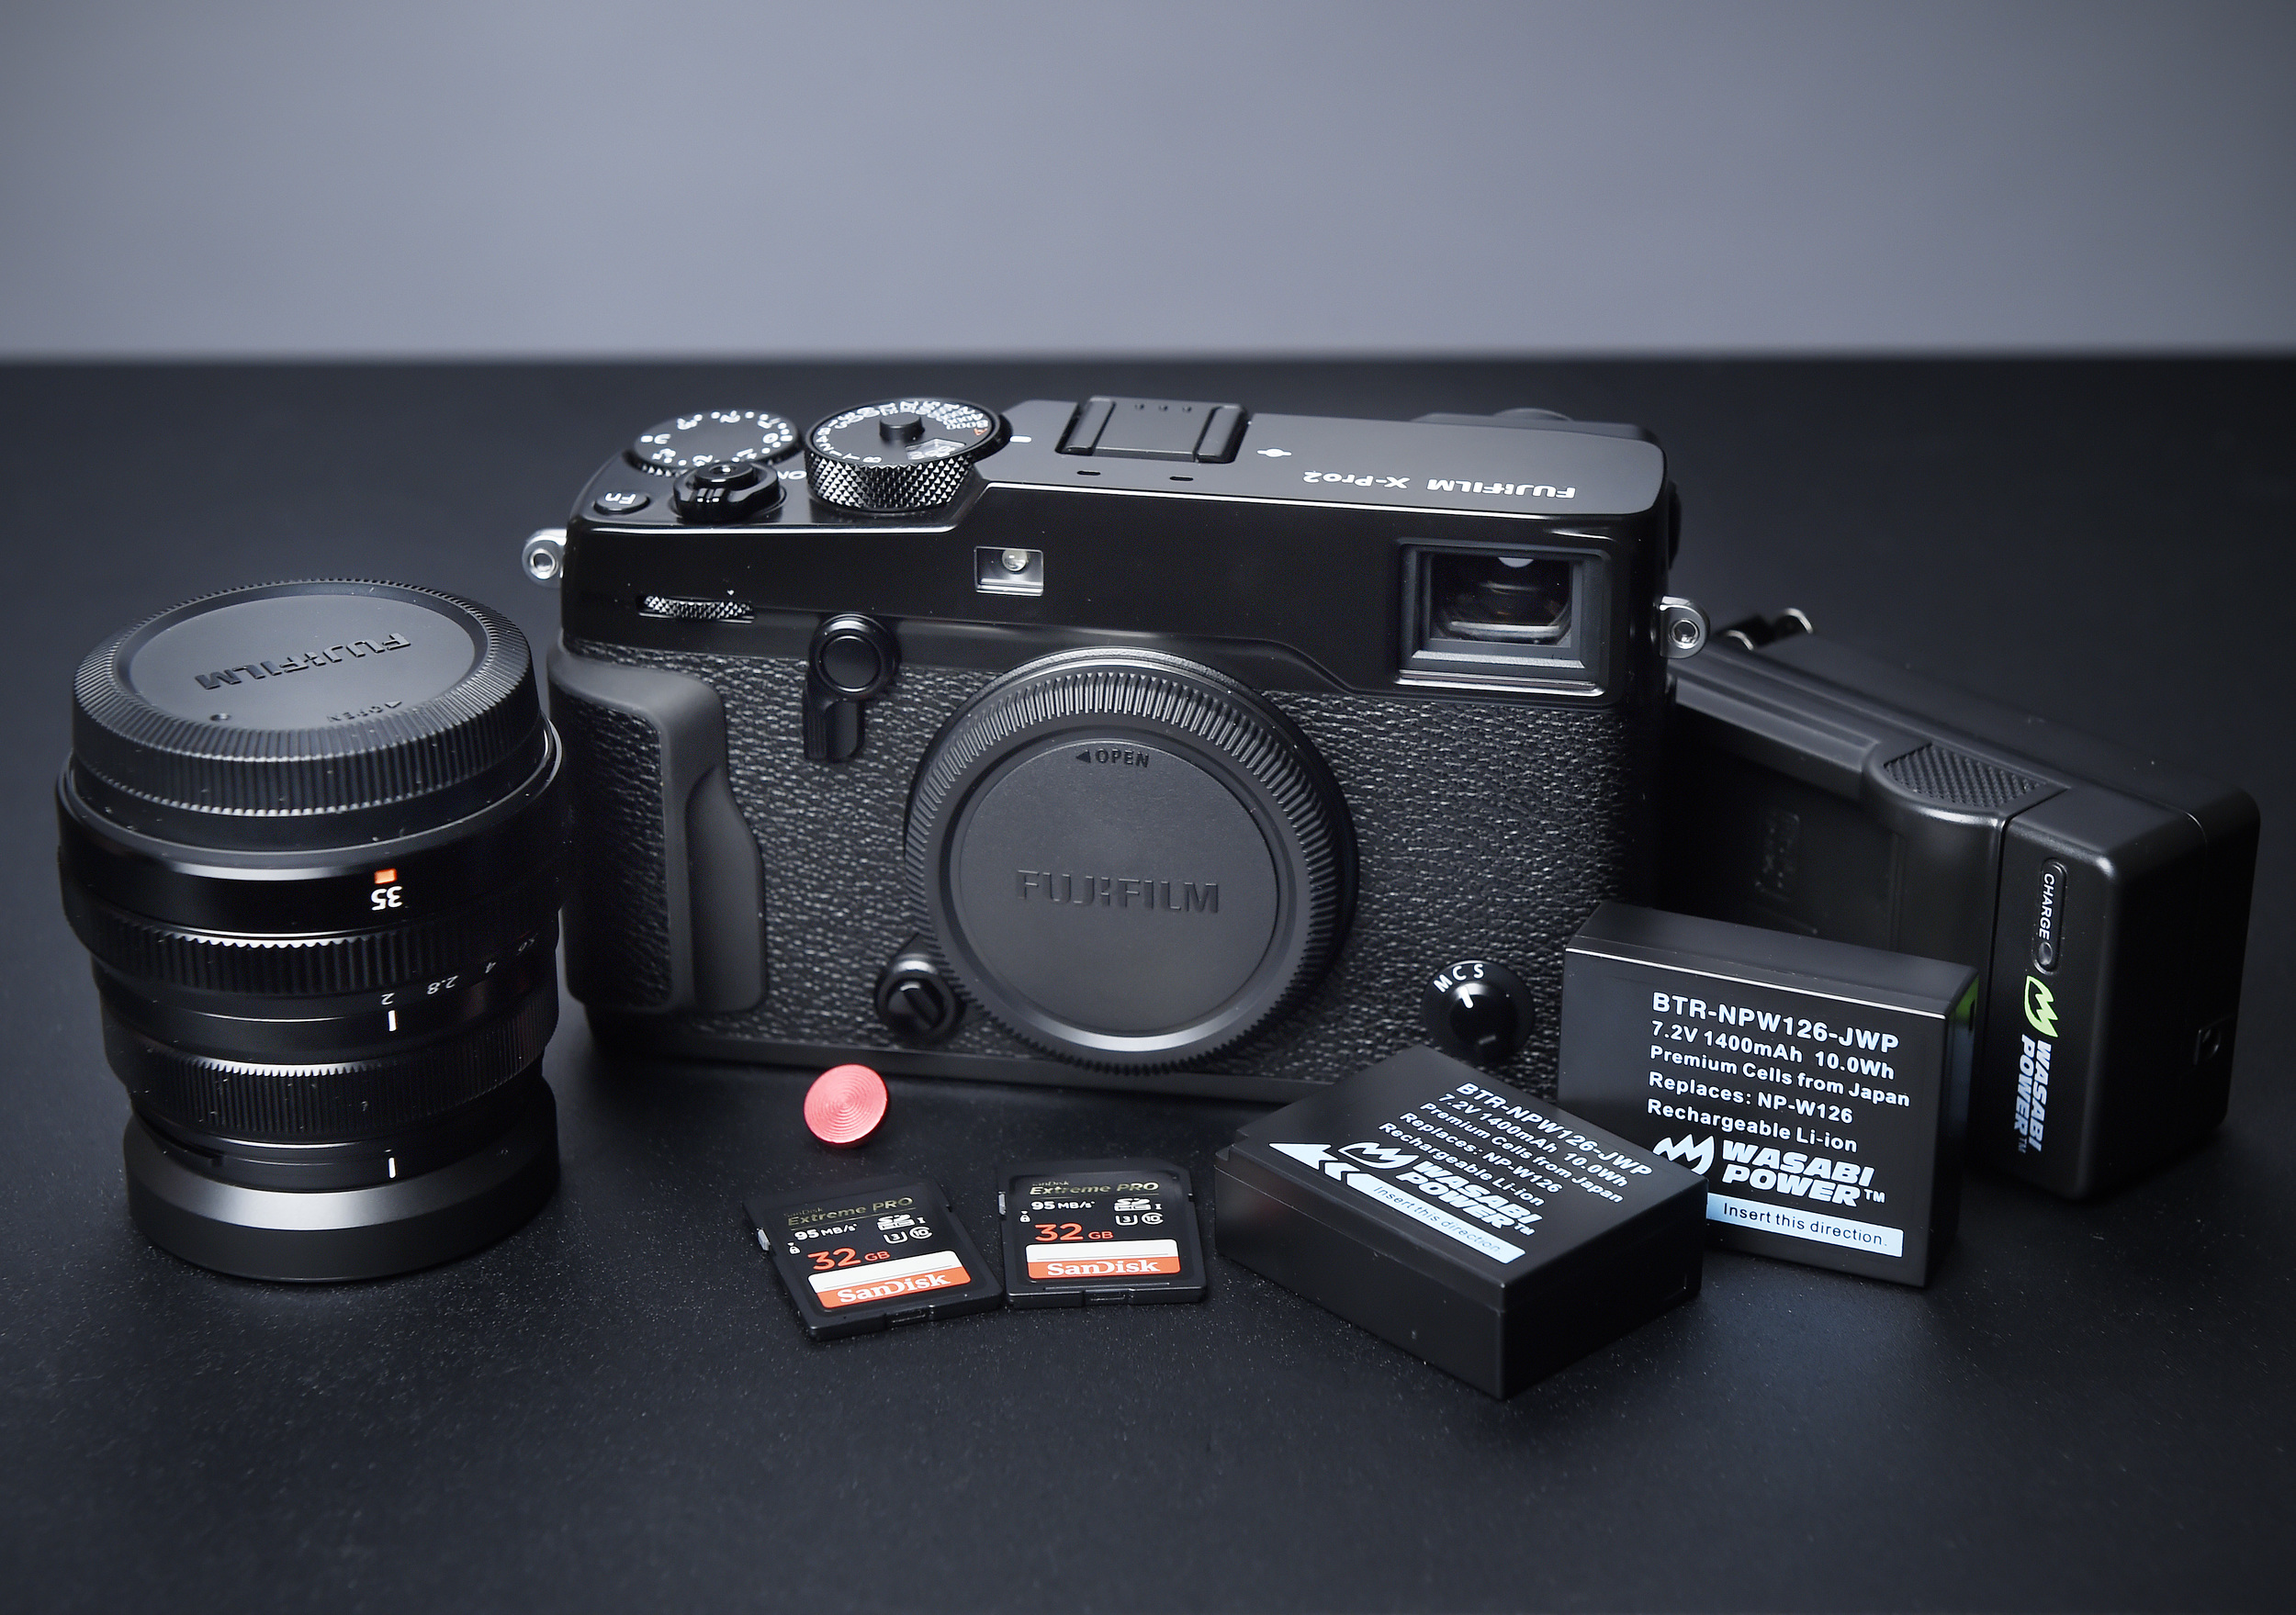 Fuji Xpro2 with XF 35 f2.0 lens, two SD cards, extra batteries and a soft shutter release button. Details and links appear at the end of this post*.